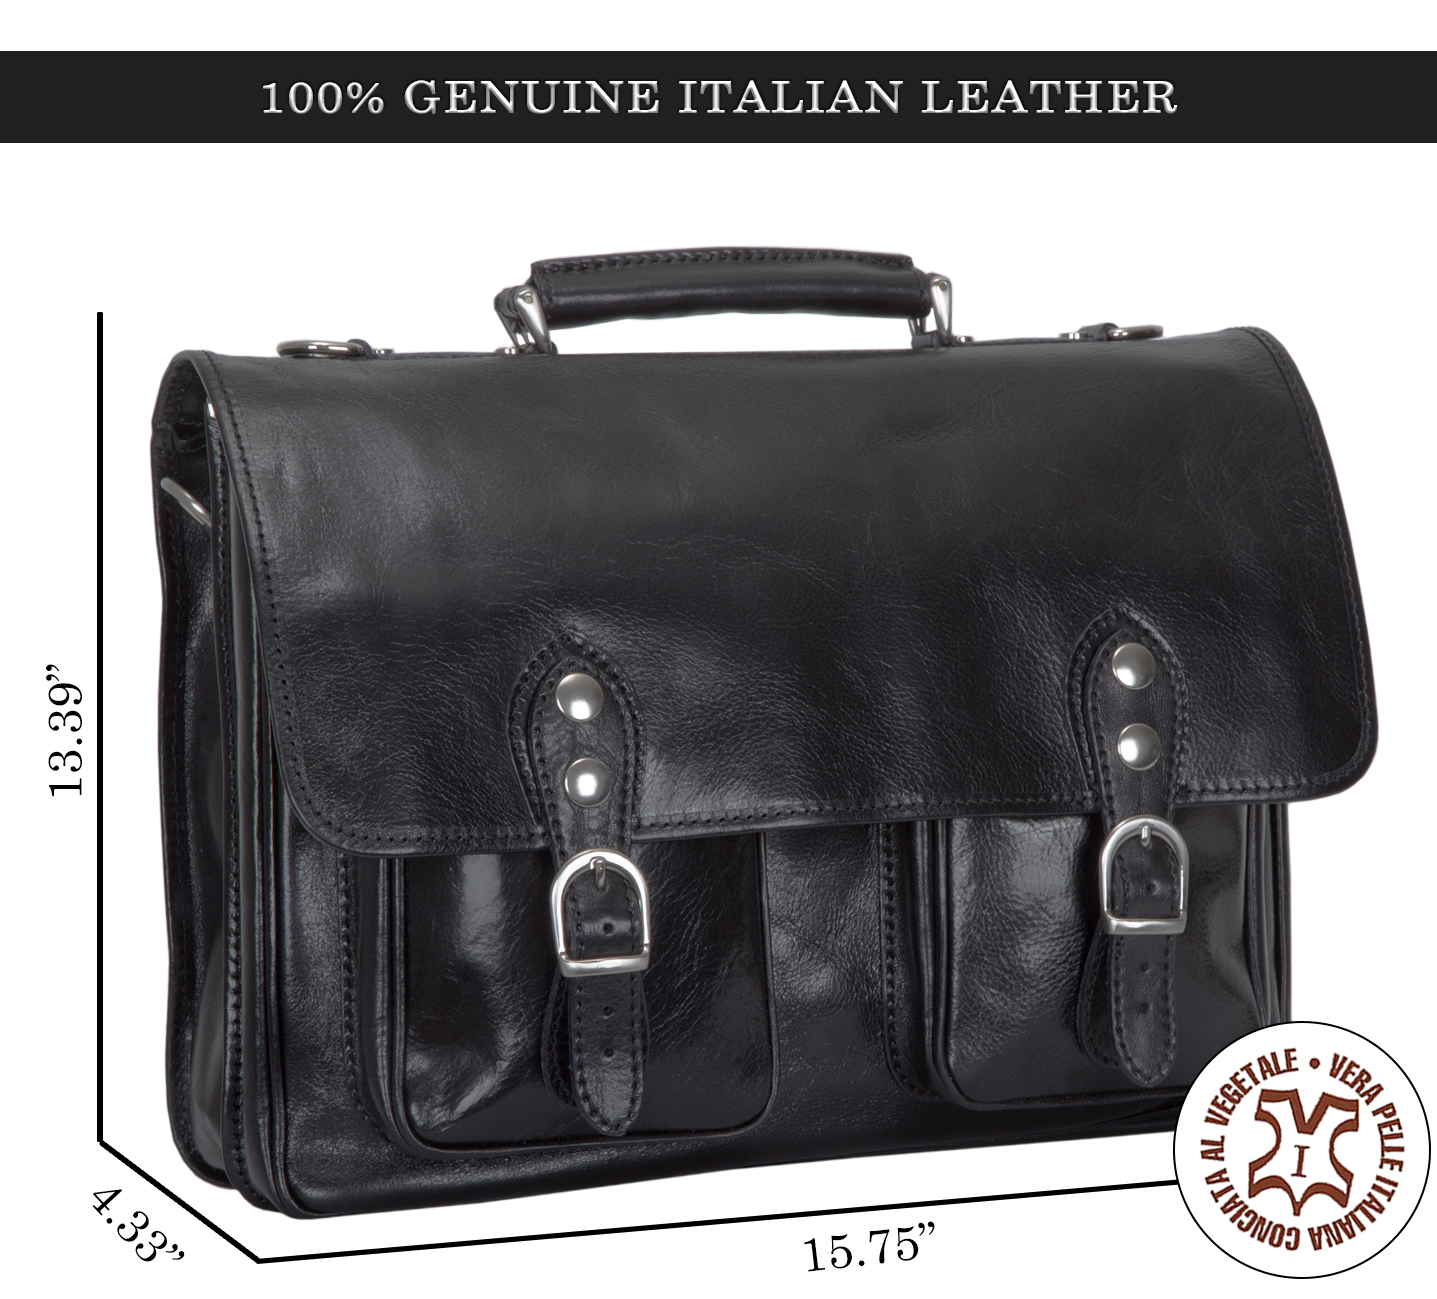 9cb802e3b55 Alberto Bellucci Italian Leather Parma Express Messenger Satchel Bag ...